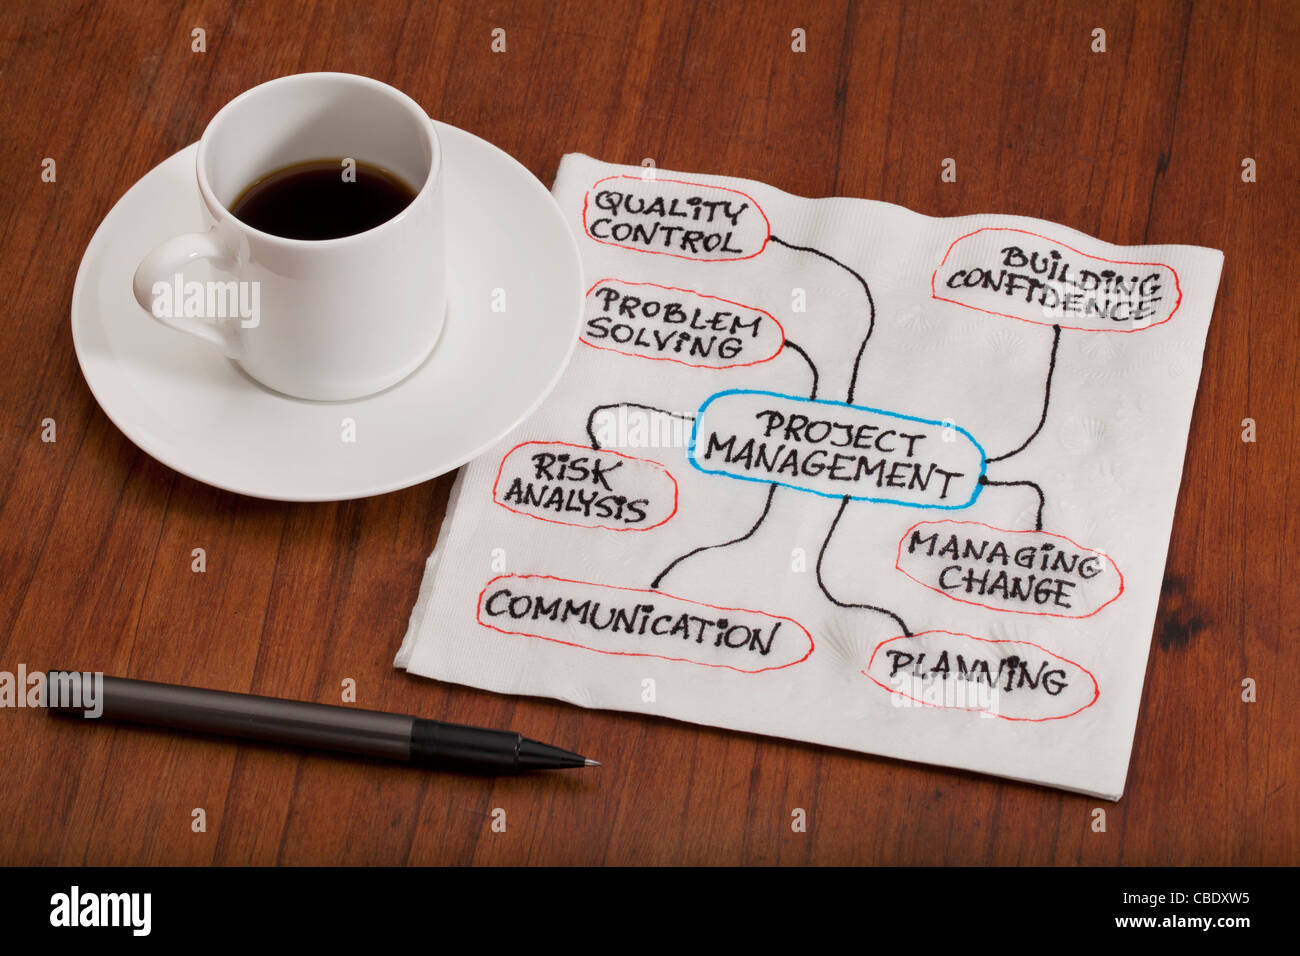 Project management concept flowchart or mind map as a napkin project management concept flowchart or mind map as a napkin doodle on table with espresso coffee cup nvjuhfo Images